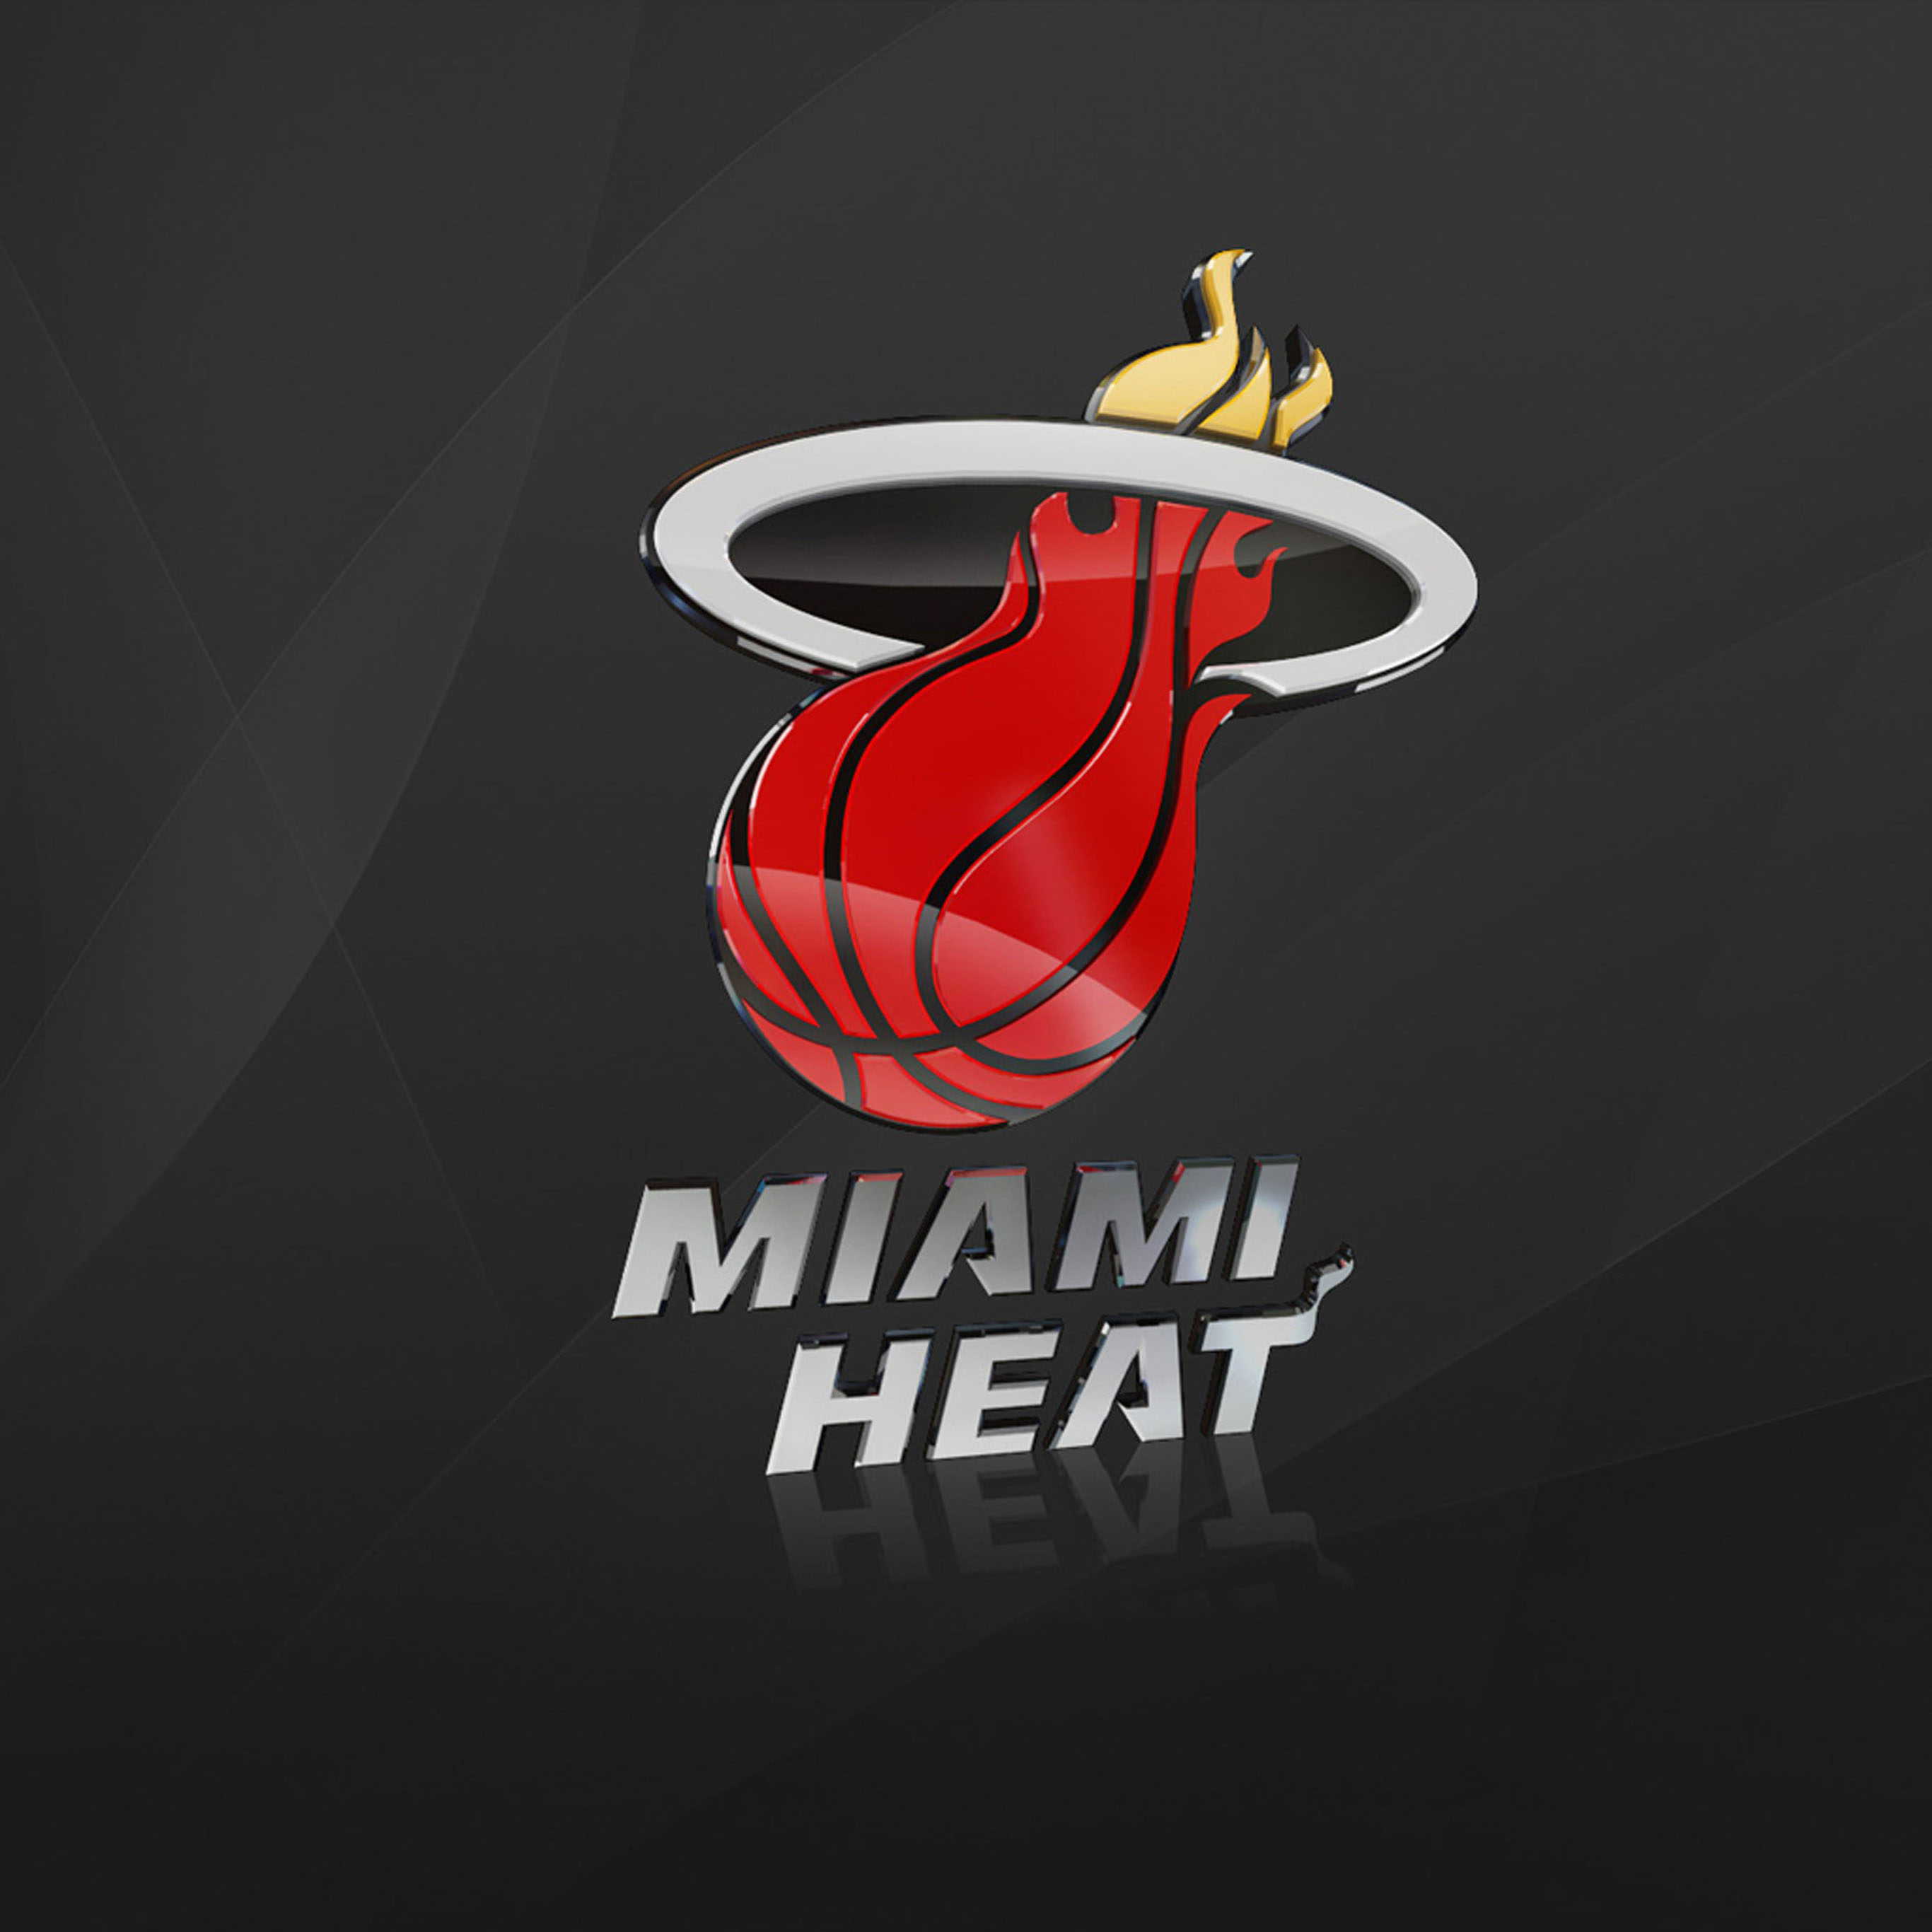 19 Miami Heat Ipad Wallpaper On Wallpapersafari